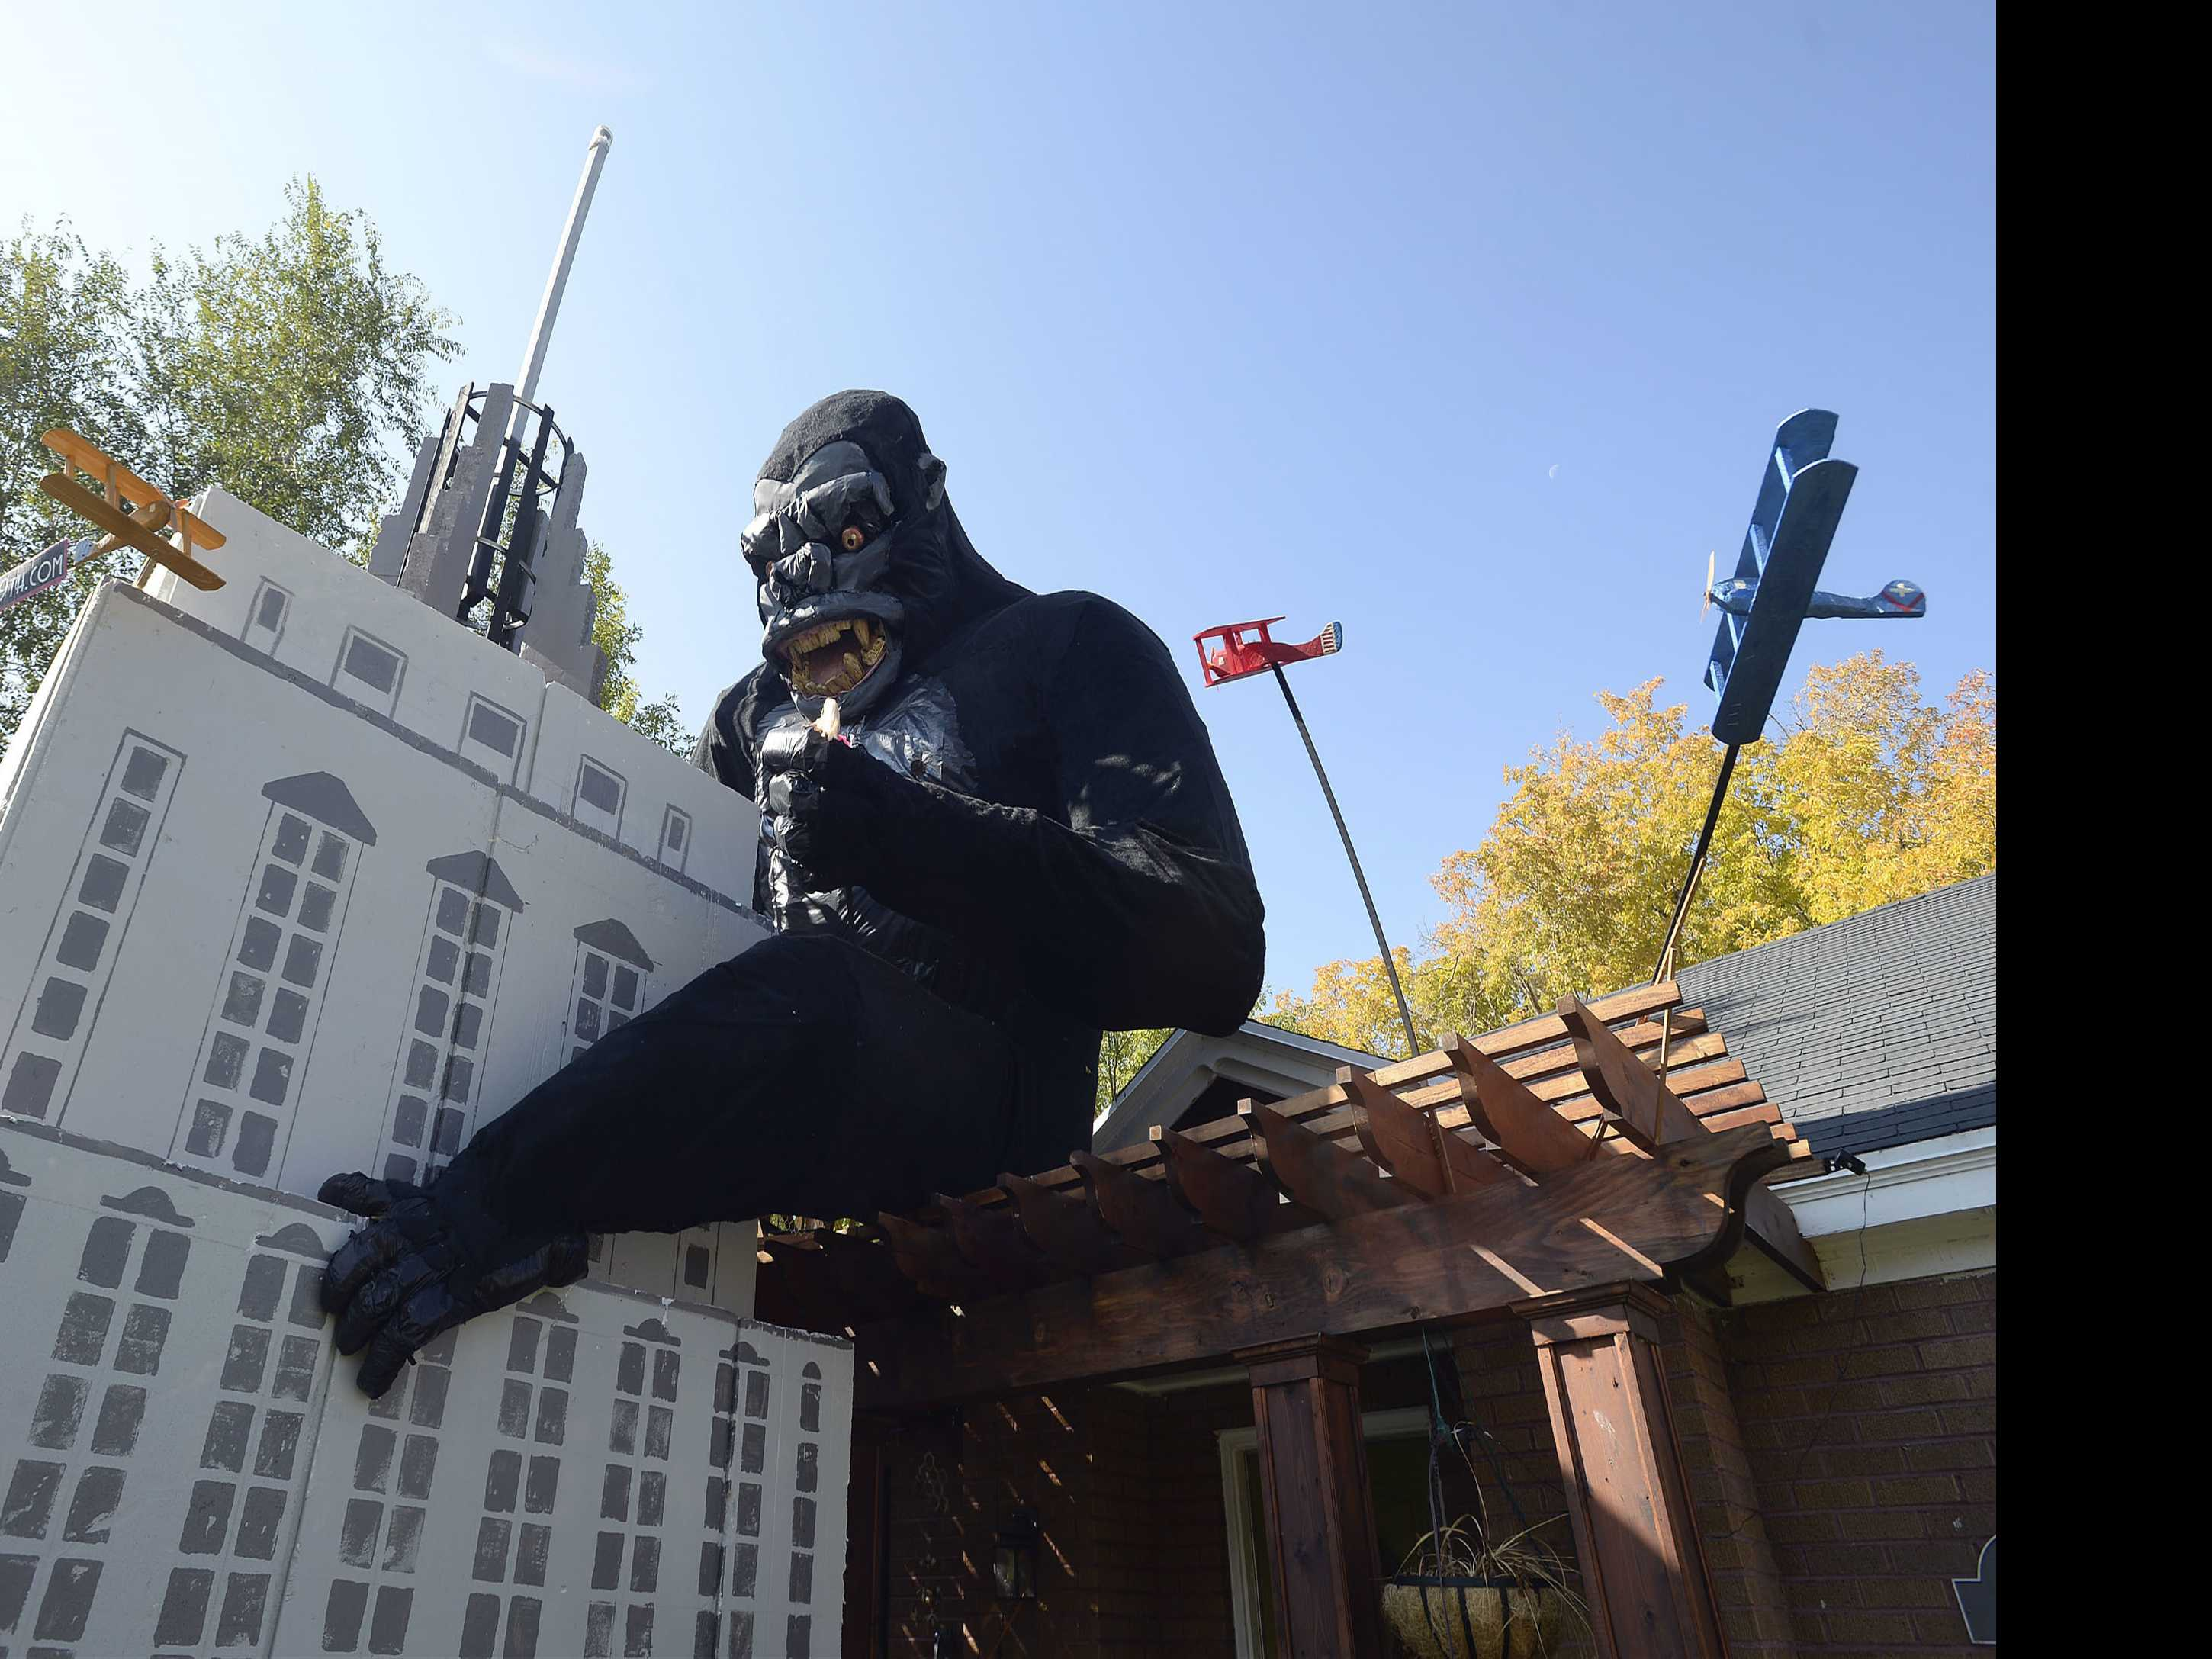 Salt Lake City Man Decorates House With King Kong Display